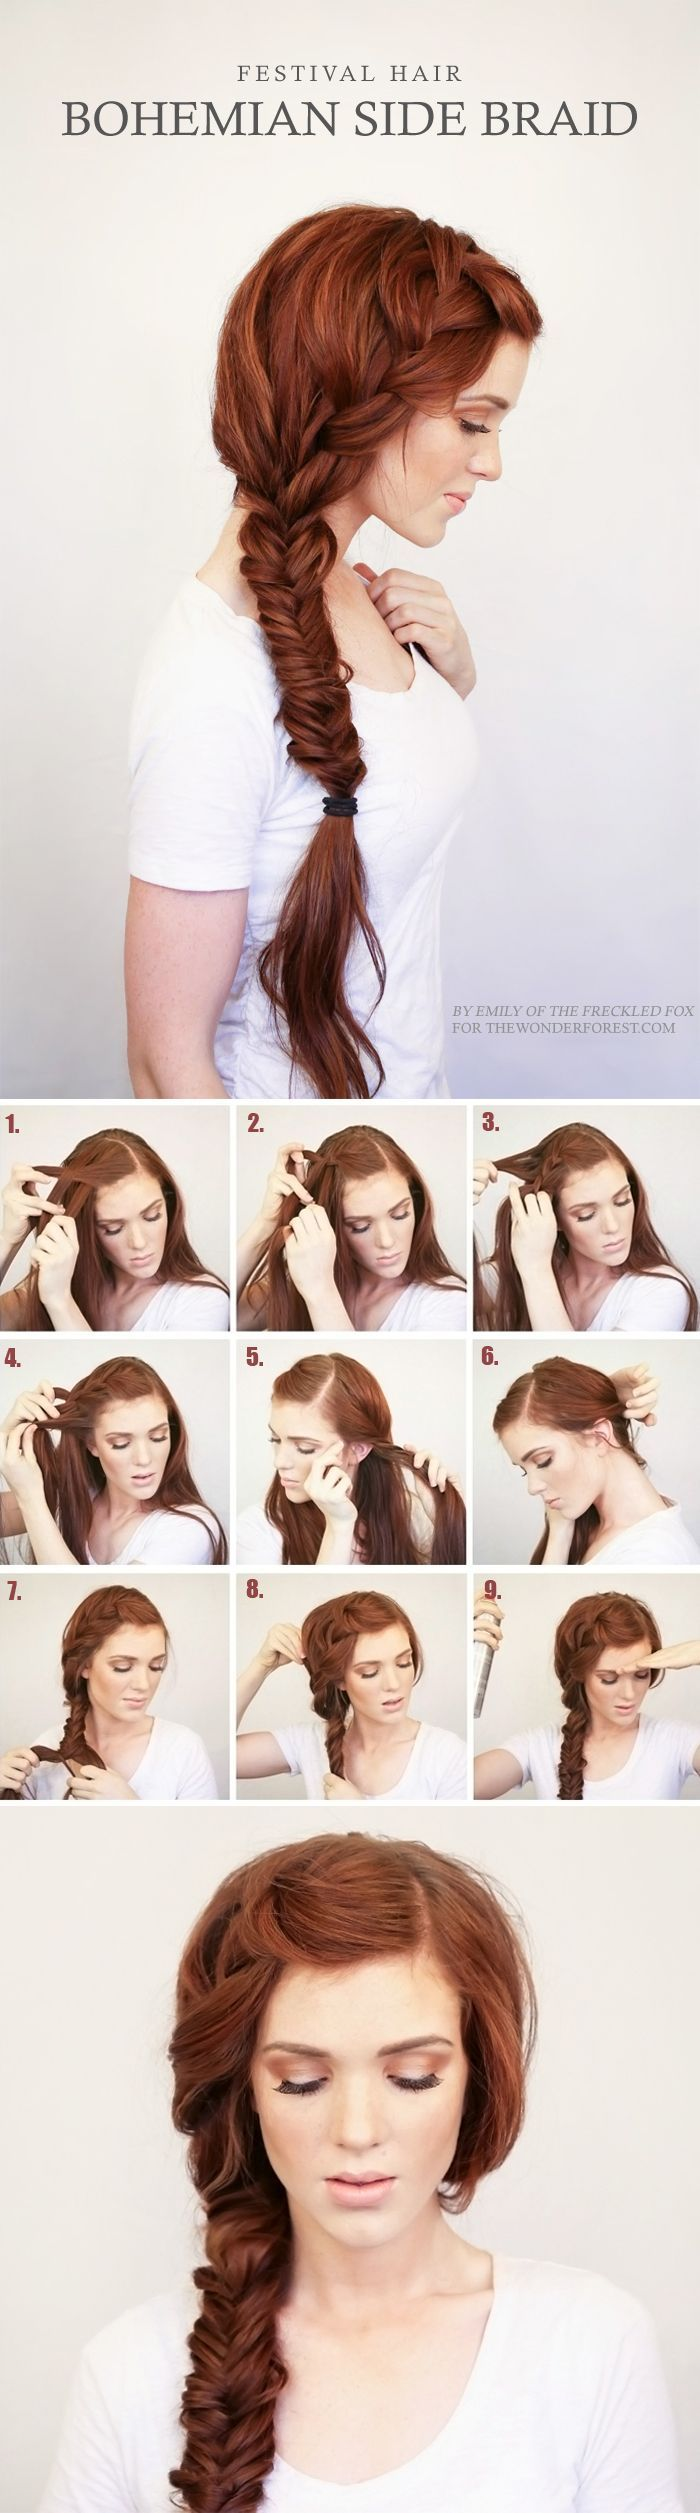 Magnificent 1000 Ideas About Side Braid Hairstyles On Pinterest Side Braids Short Hairstyles Gunalazisus